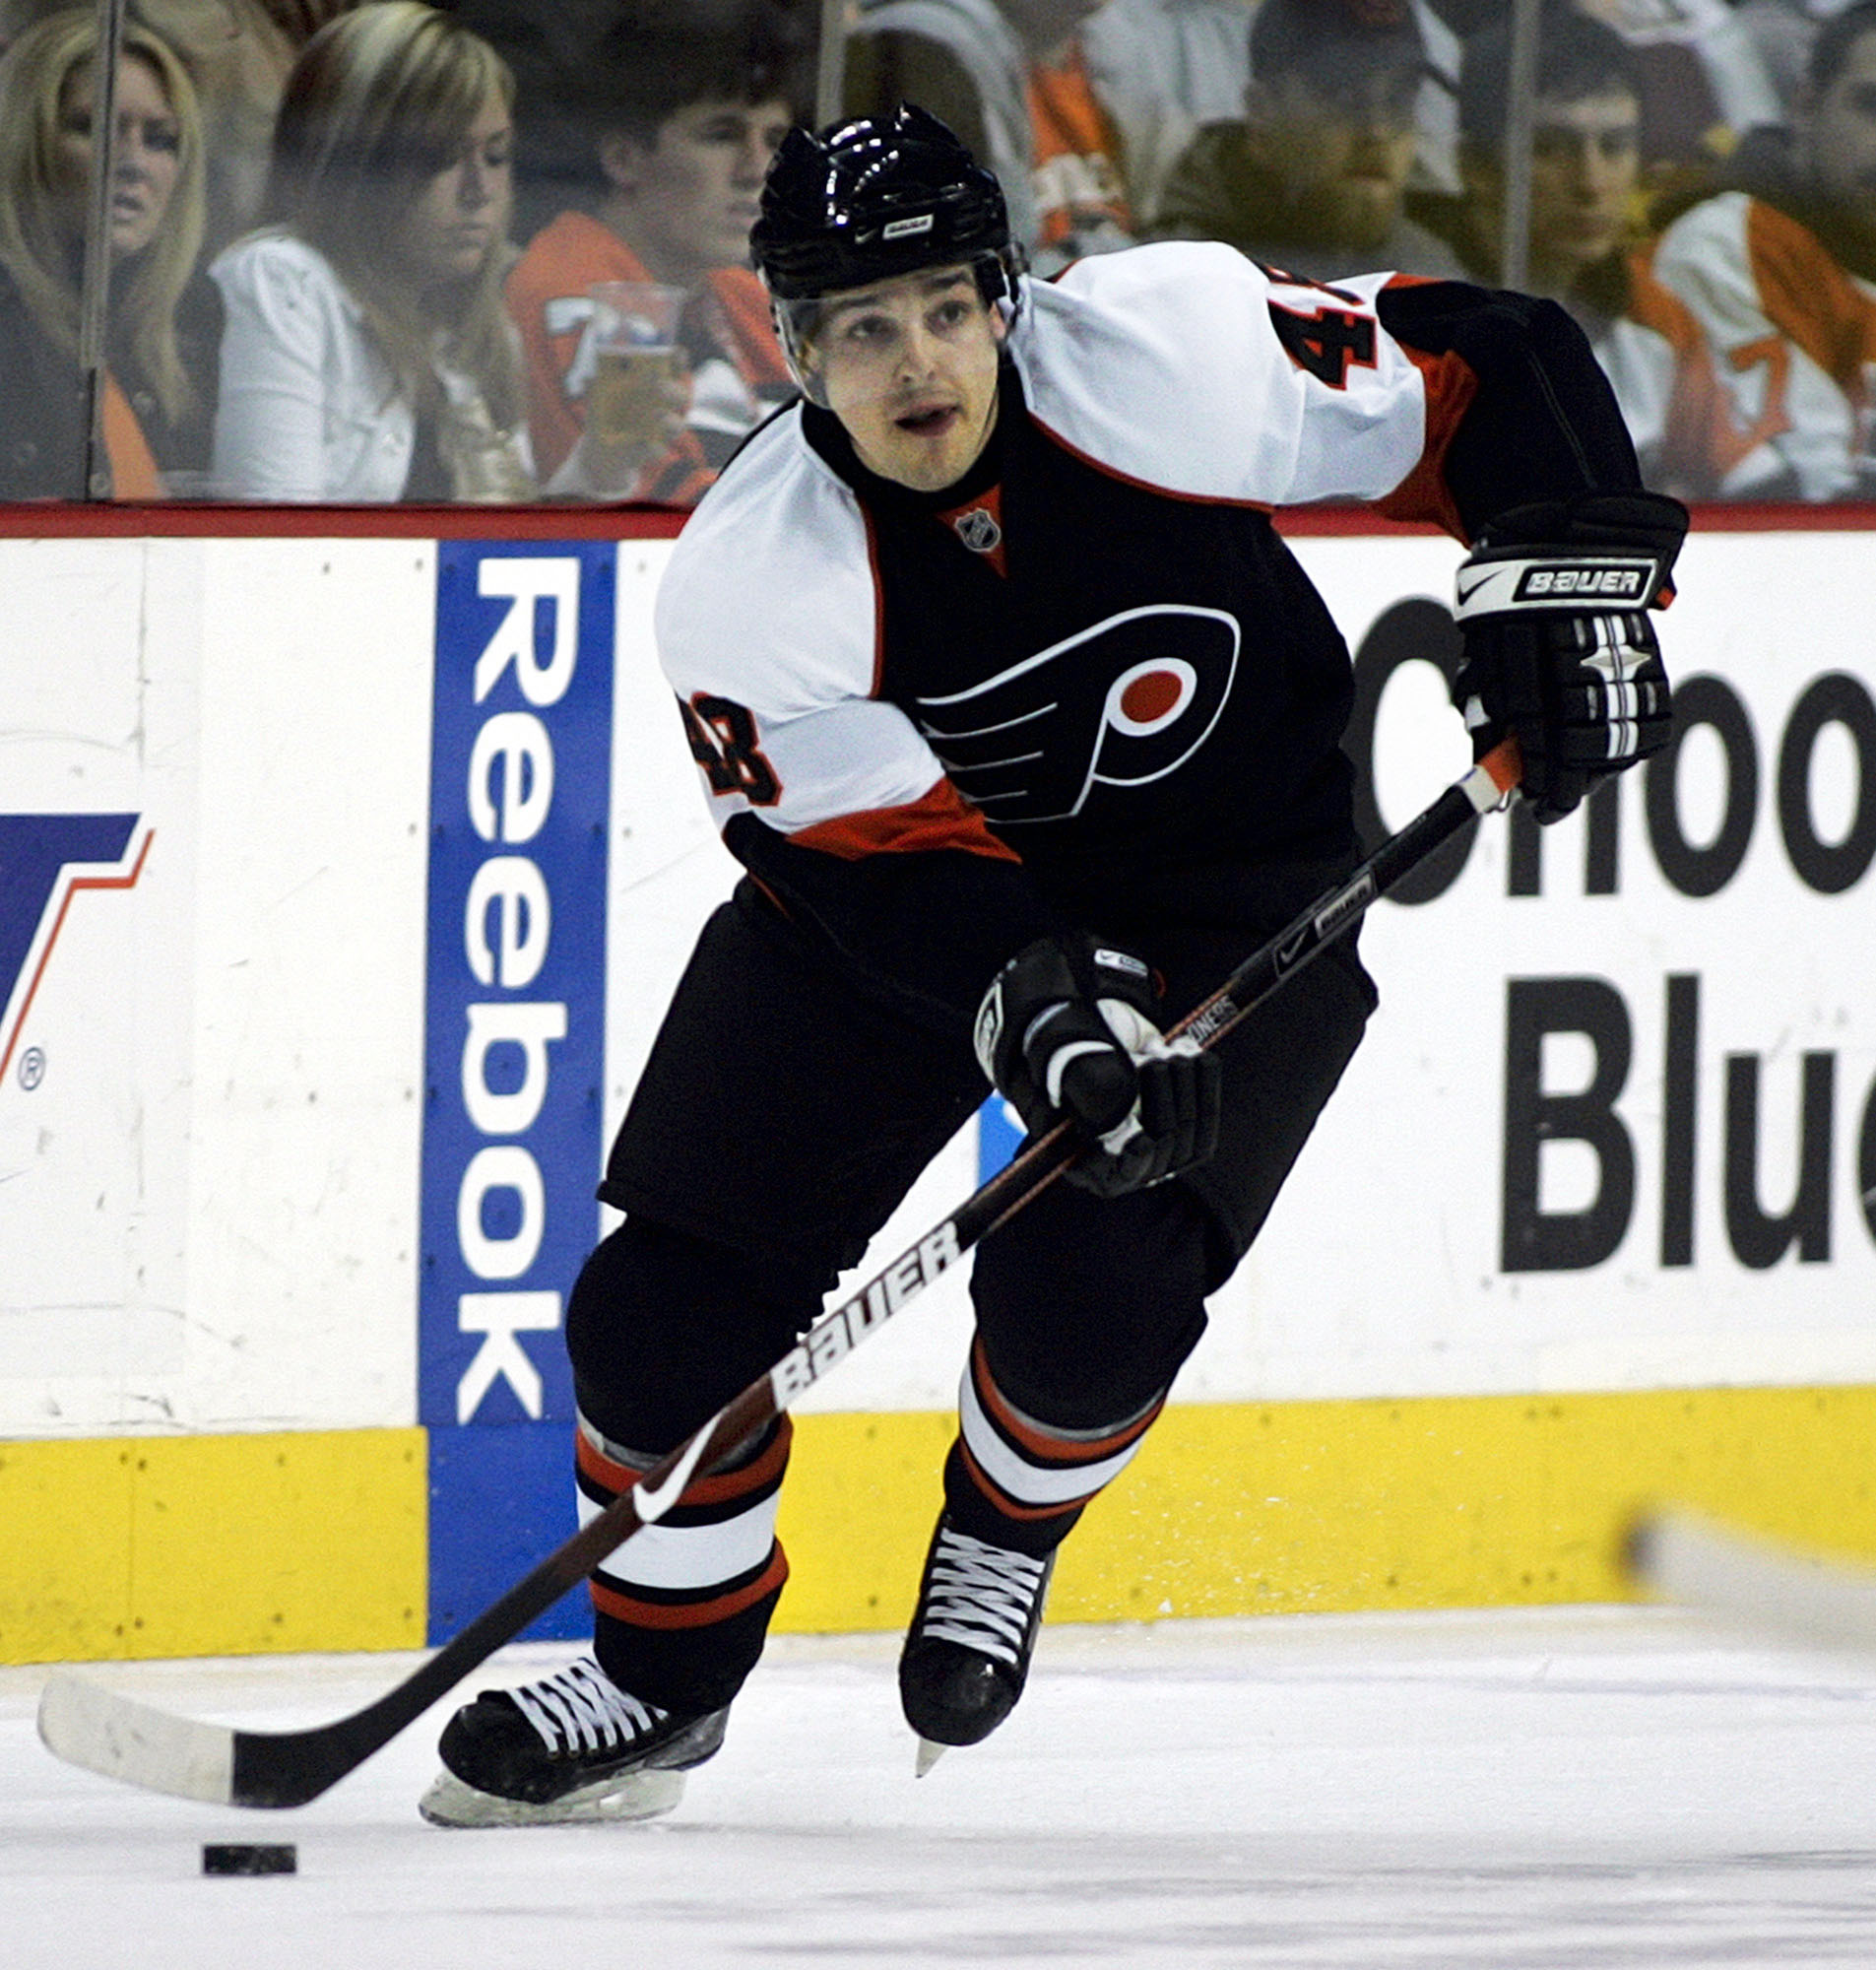 FILE - In this March 5, 2009, file photo, Philadelphia Flyers center Daniel Briere moves the puck up ice in the second period of an NHL hockey game against the Calgary Flames in Philadelphia. Briere, the undersized center who went on to become an NHL All-